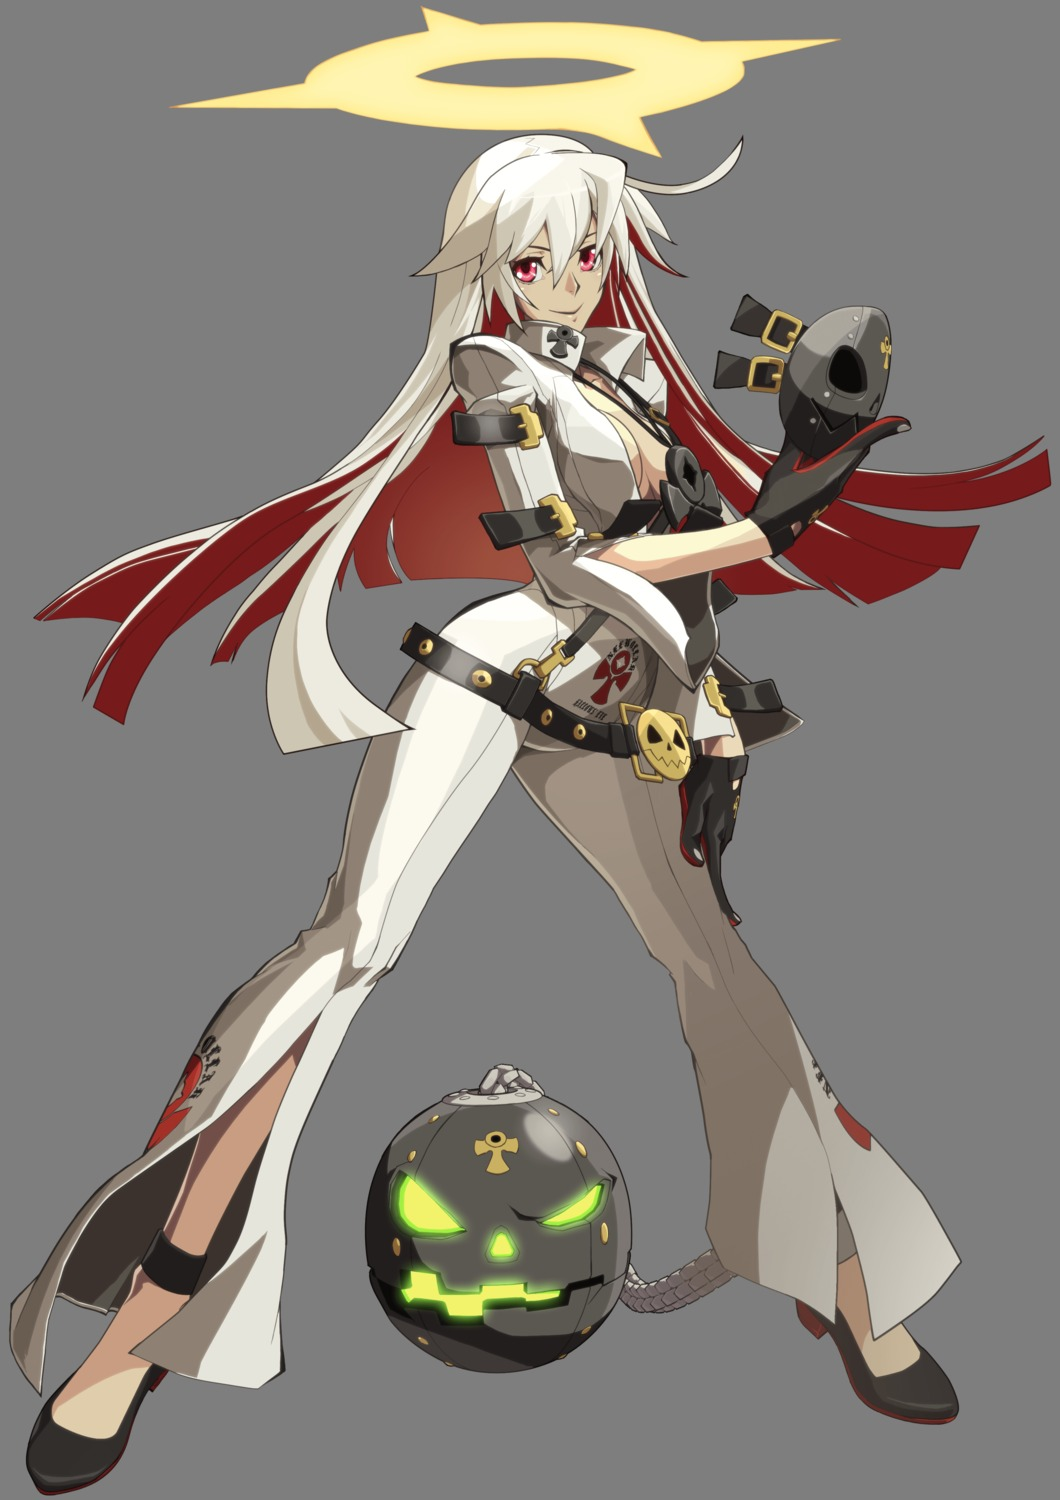 bodysuit cleavage guilty_gear guilty_gear_xrd_revelator heels jack-o no_bra open_shirt transparent_png